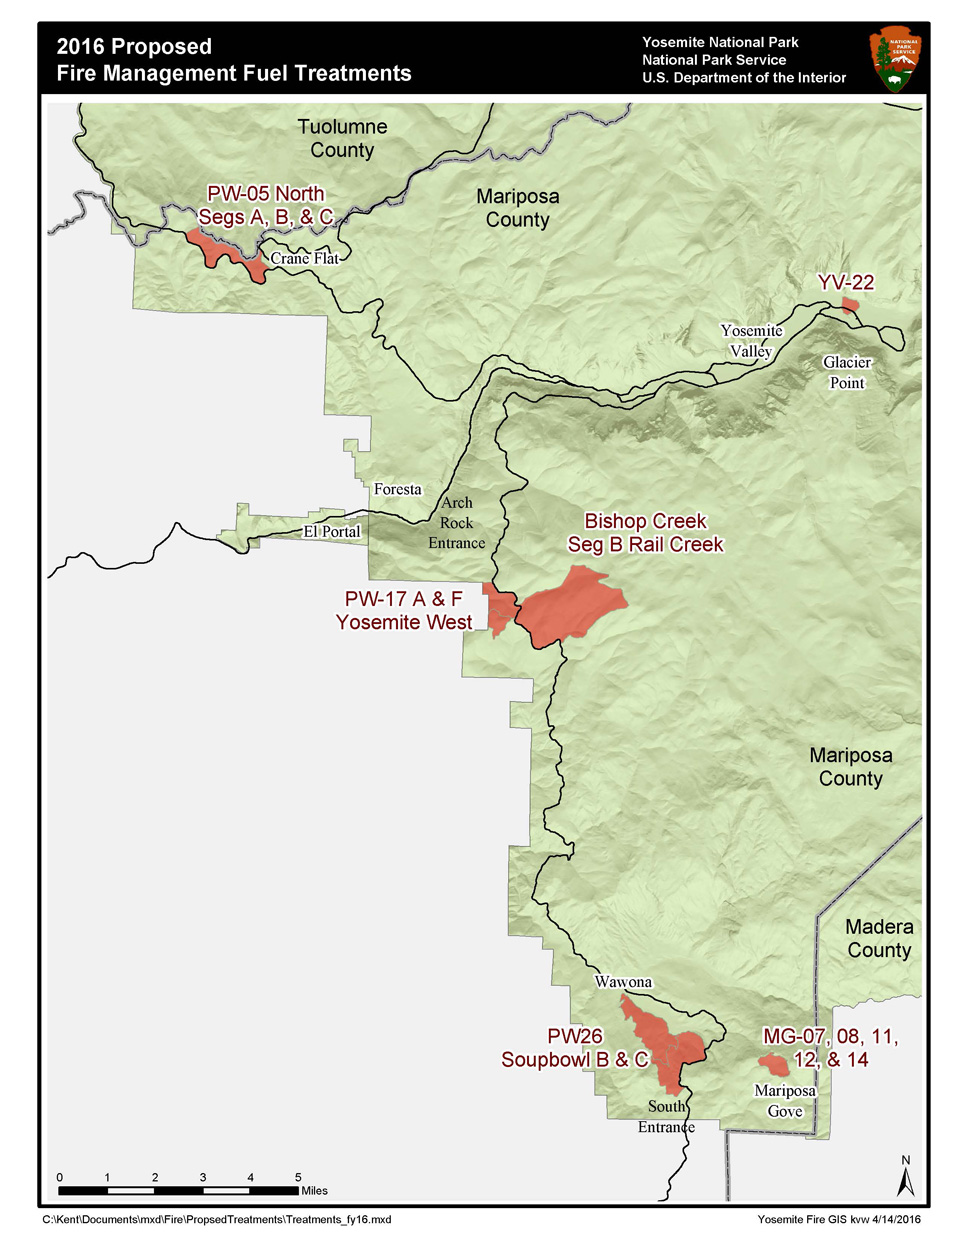 2016 proposed fire and fuels treatment map